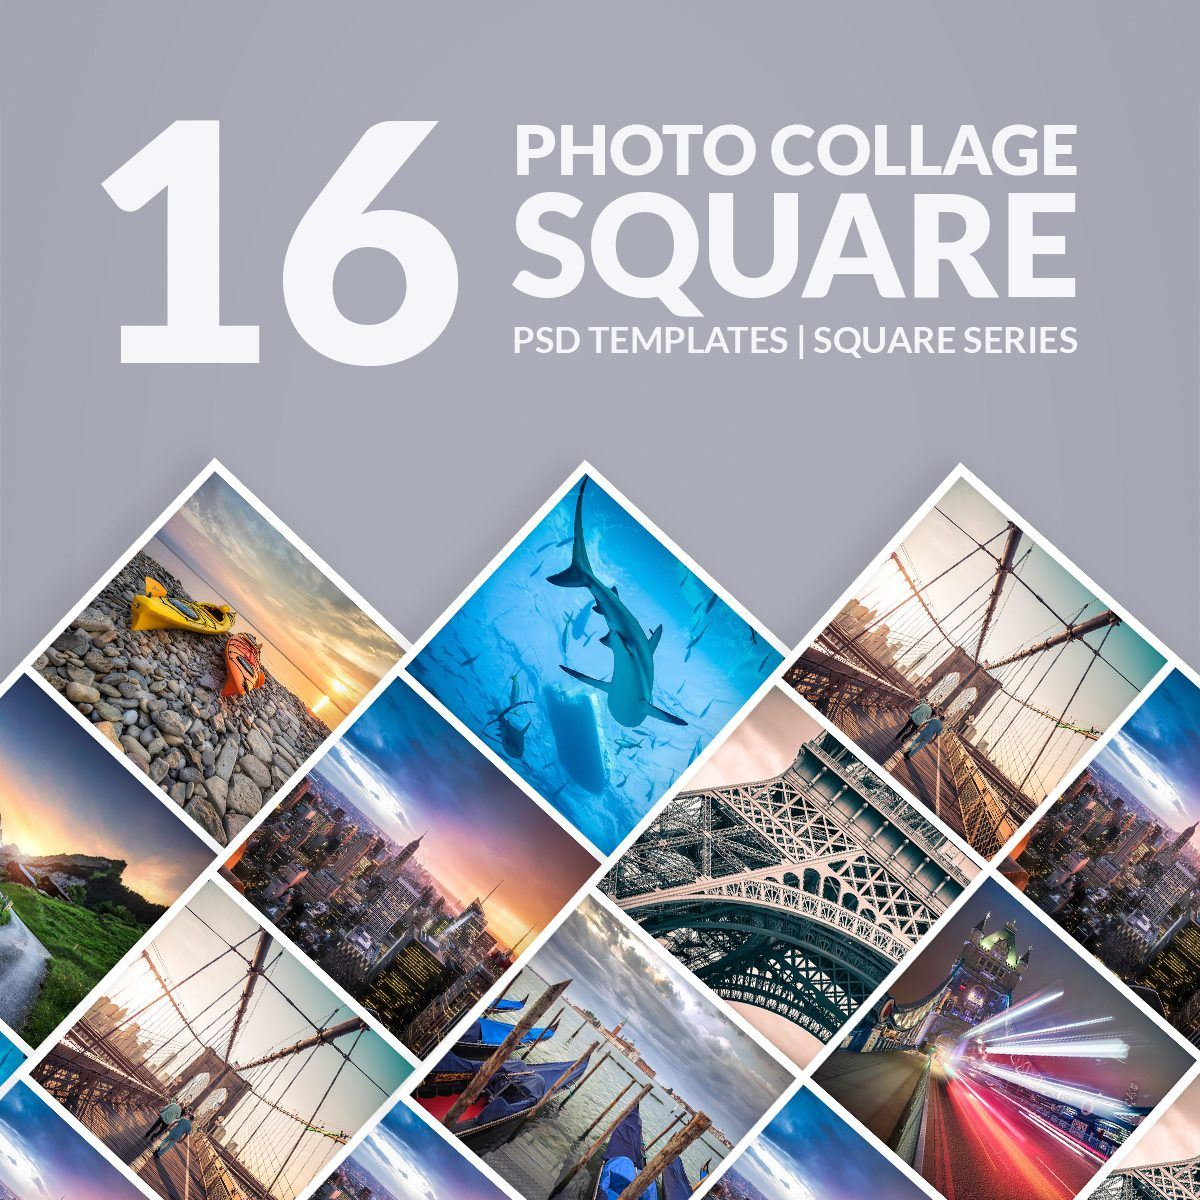 Presetpro Photoshop Templates Photo Collage Square Series